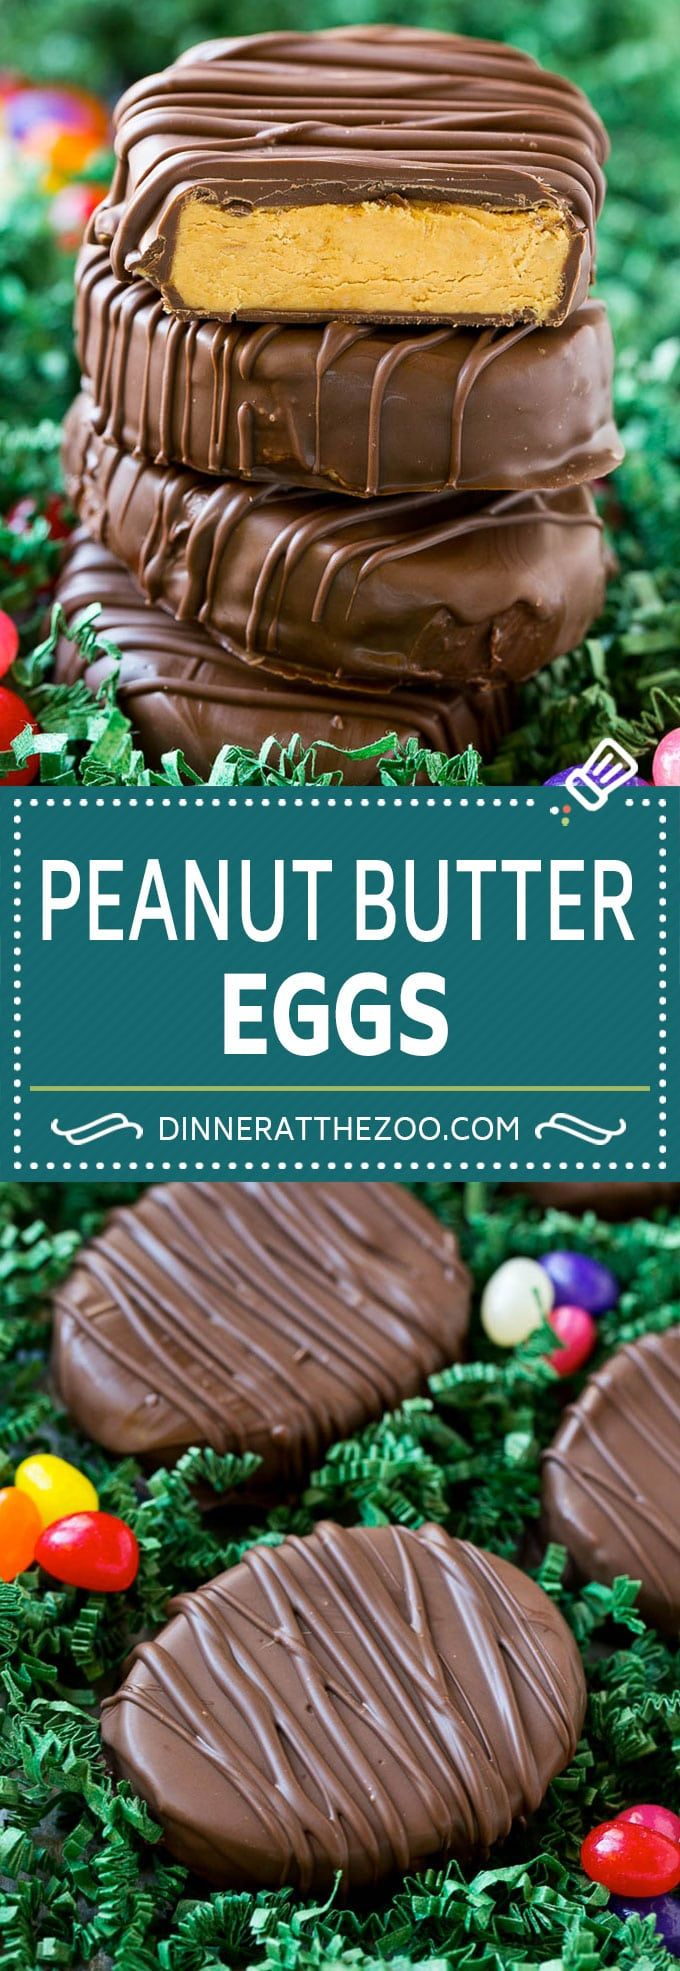 Peanut Butter Eggs | Reese's Eggs | Homemade Peanut Butter Cups | Easter Dessert Recipe